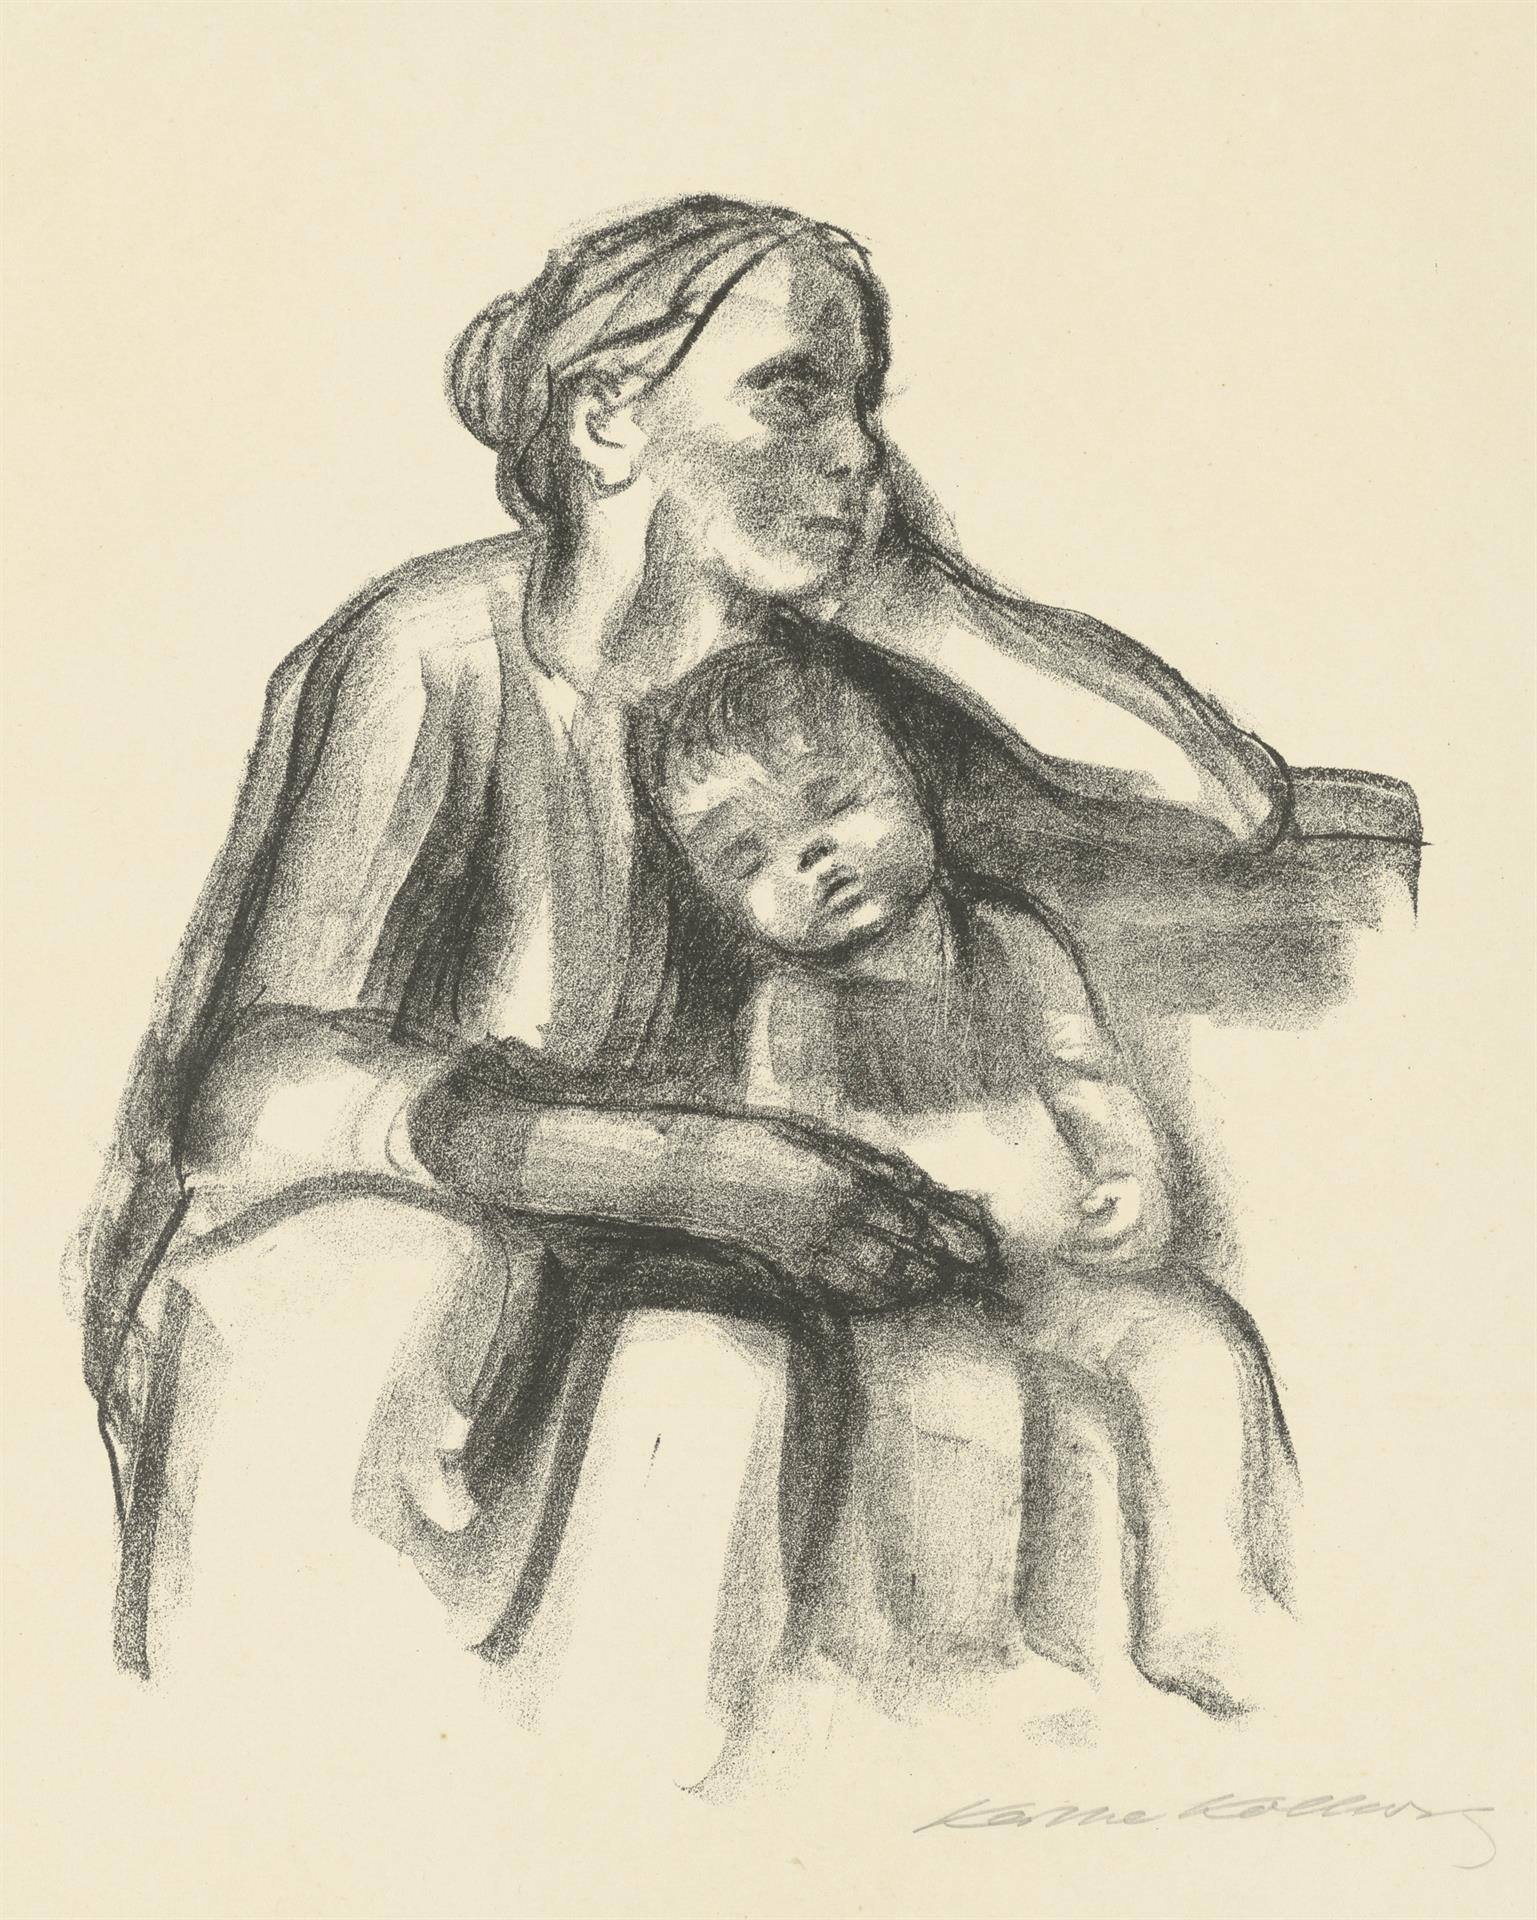 Käthe Kollwitz, Worker Woman with Sleeping Child, 1927, crayon lithograph (transfer), Kn 234 I c, Cologne Kollwitz Collection © Käthe Kollwitz Museum Köln